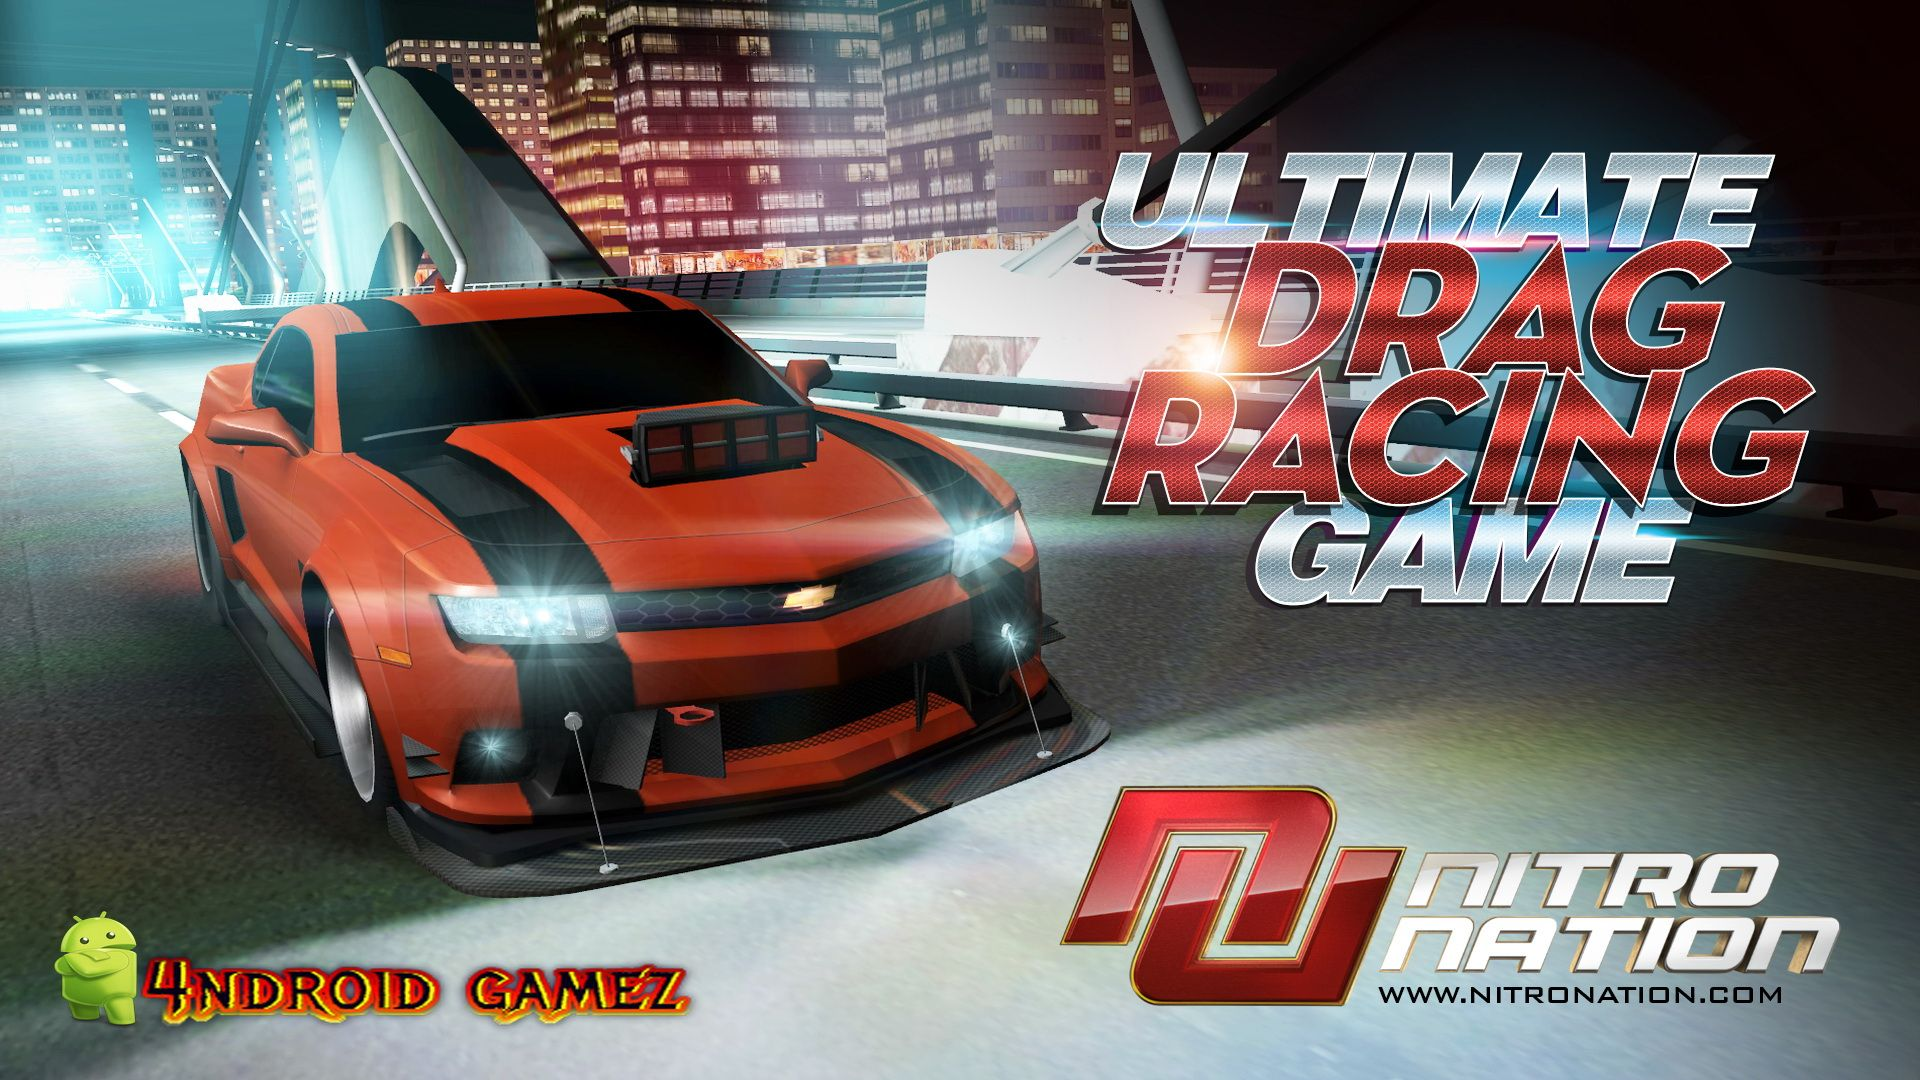 nitro nation hack apk free download